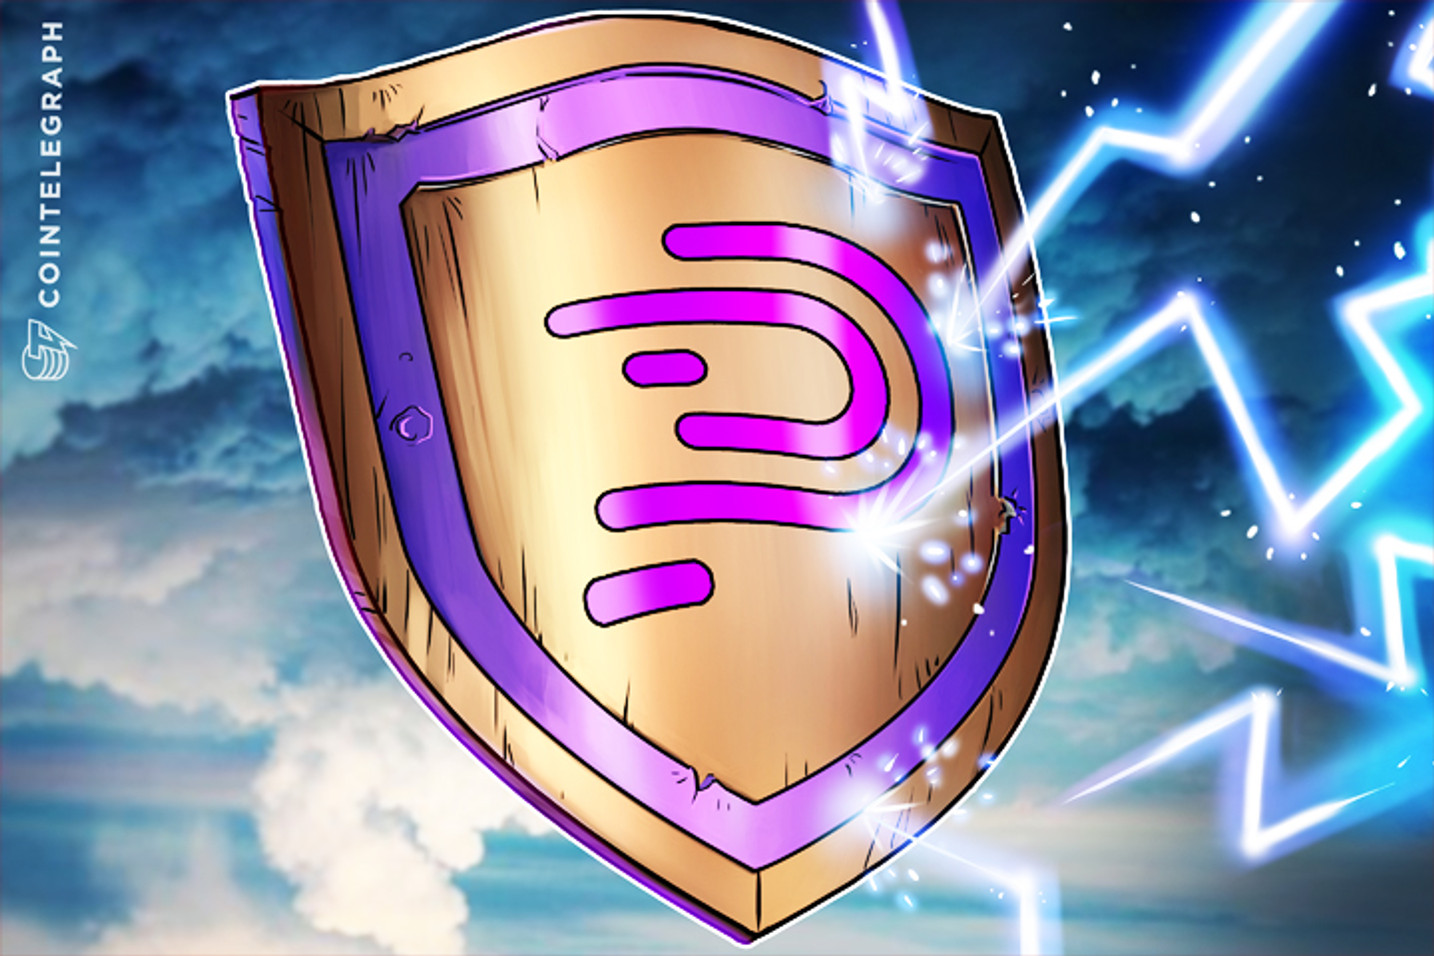 Startup Intends to Shake Up Antivirus Industry With a Decentralized Marketplace